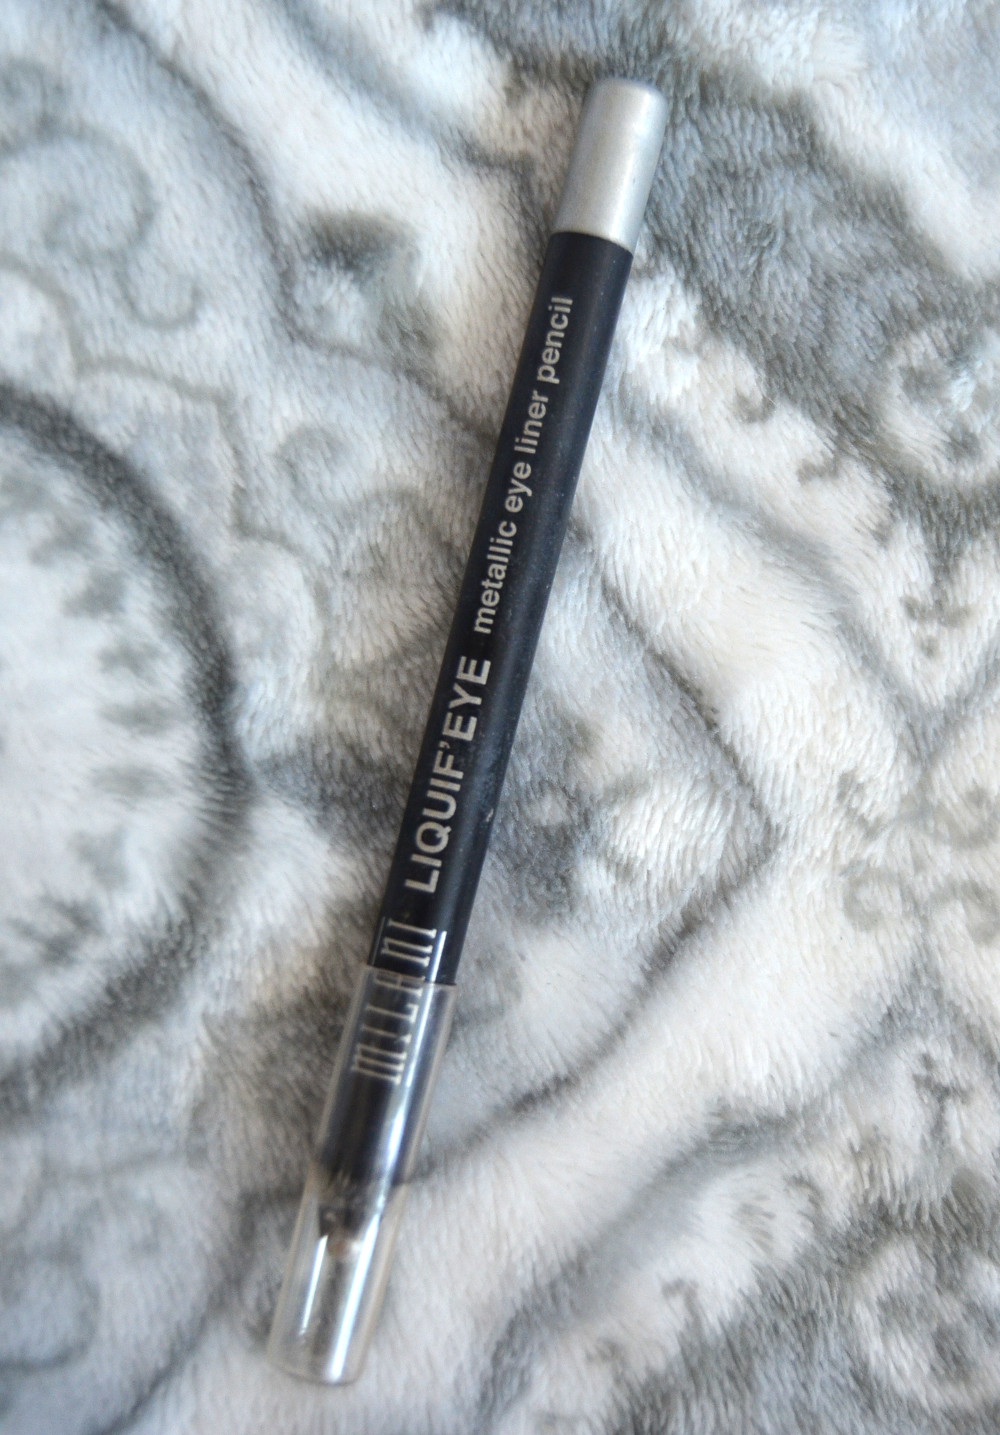 silver eye widening brightening eyeliner for eye inner corners